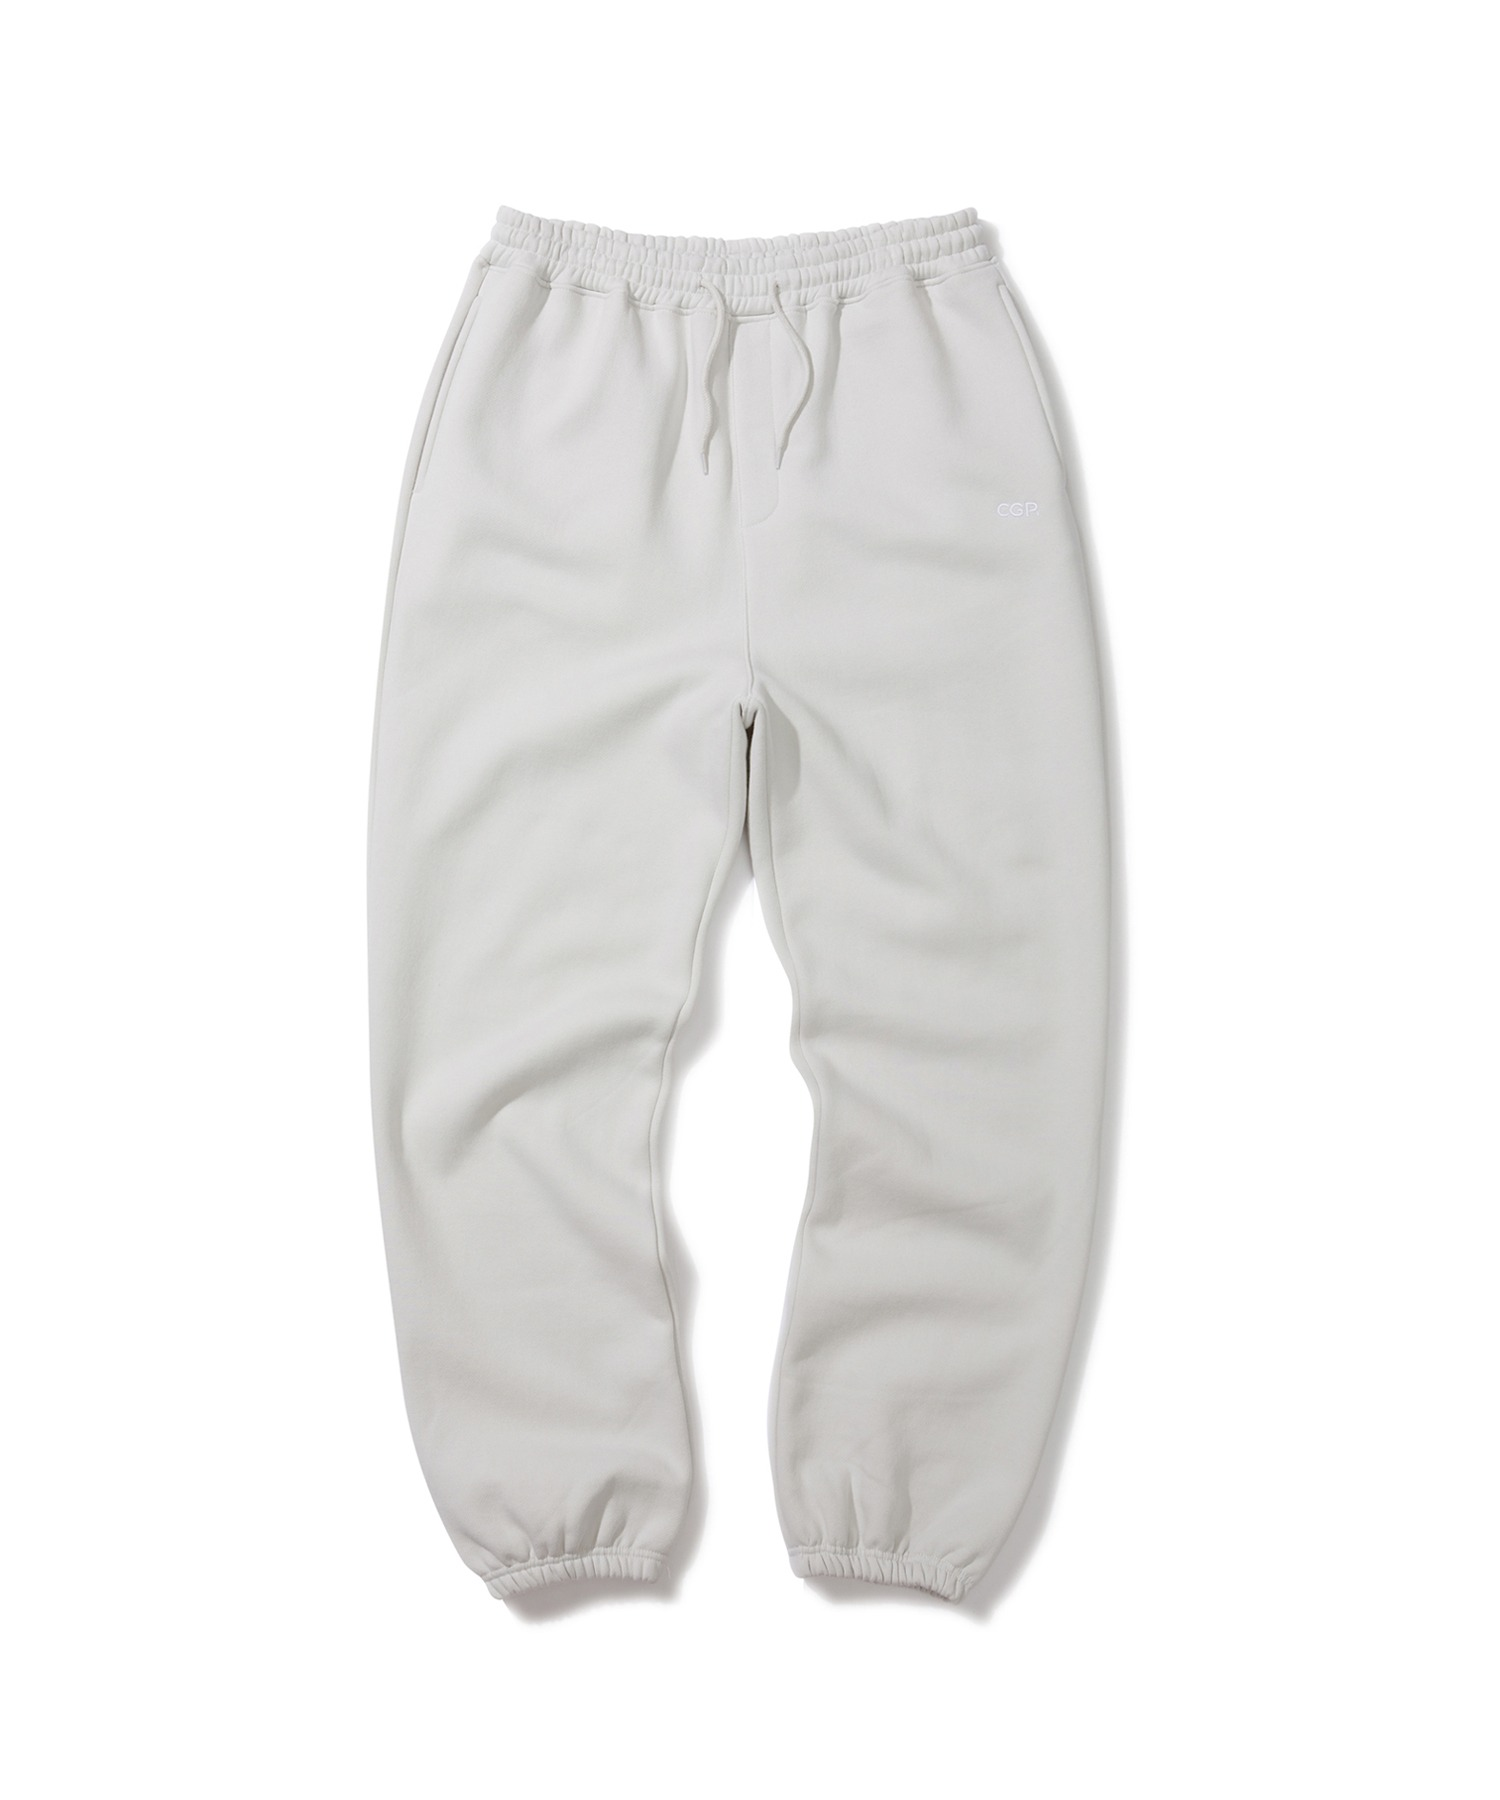 CGP BASIC TRAINING PANTS - LGR